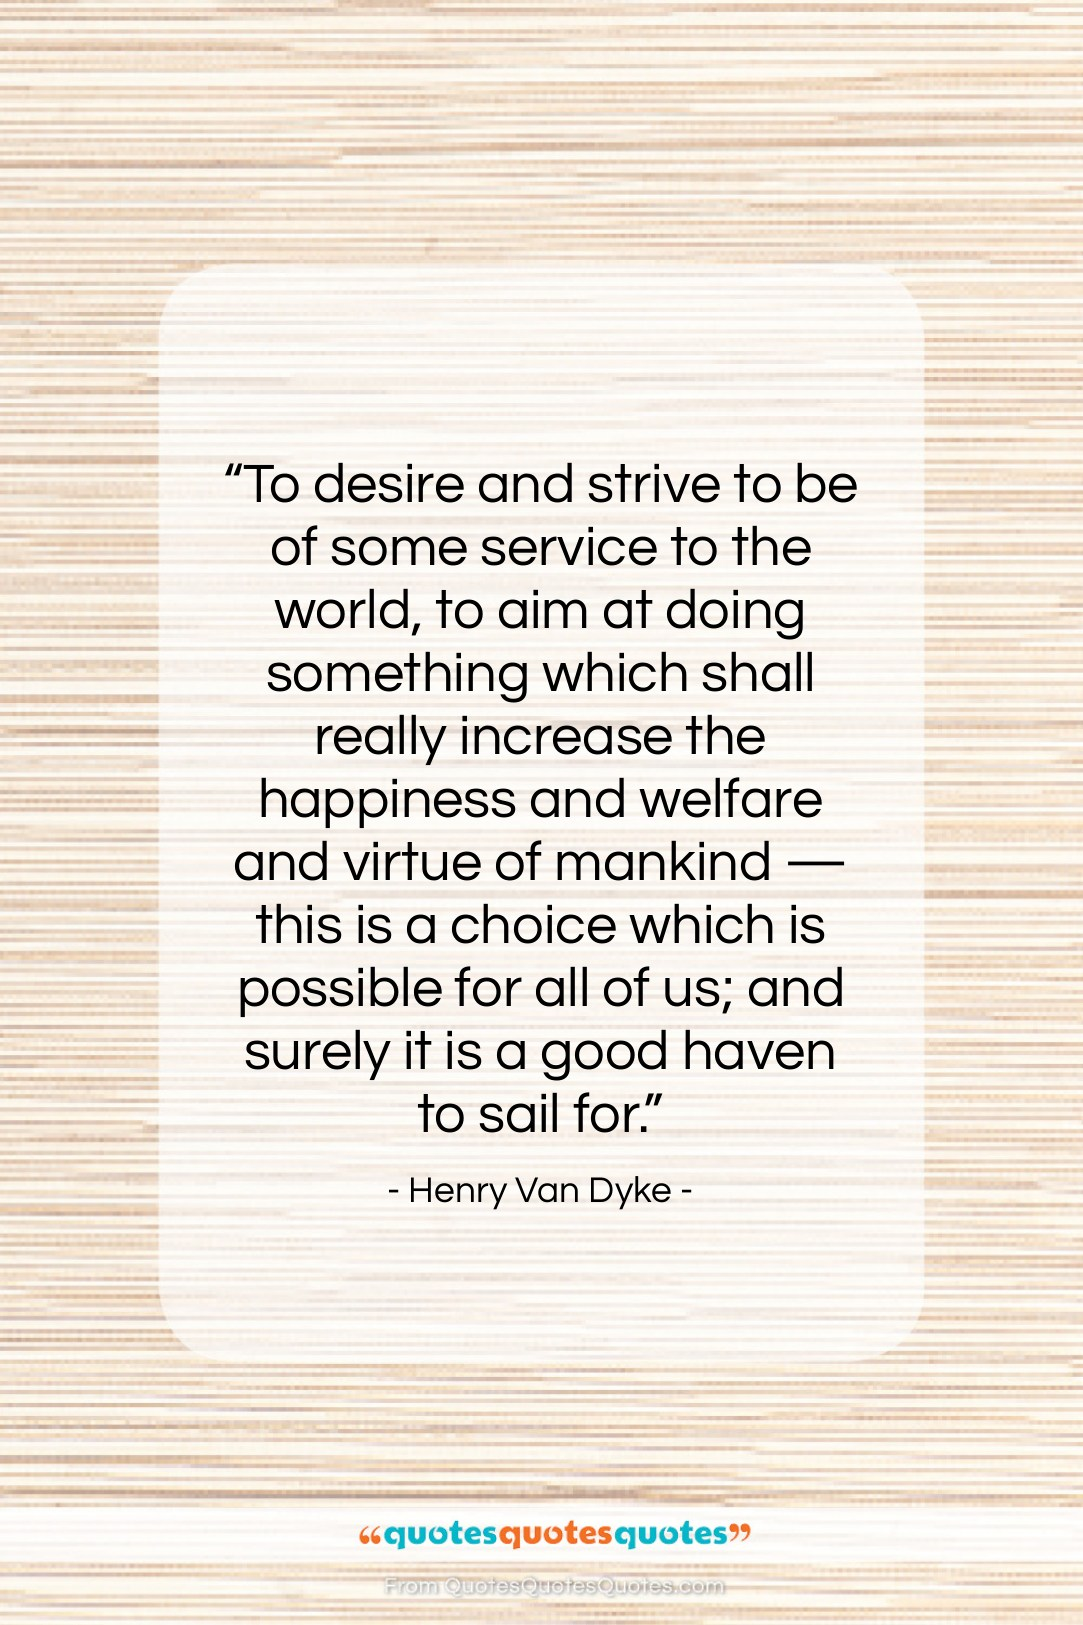 """Henry Van Dyke quote: """"To desire and strive to be of…""""- at QuotesQuotesQuotes.com"""